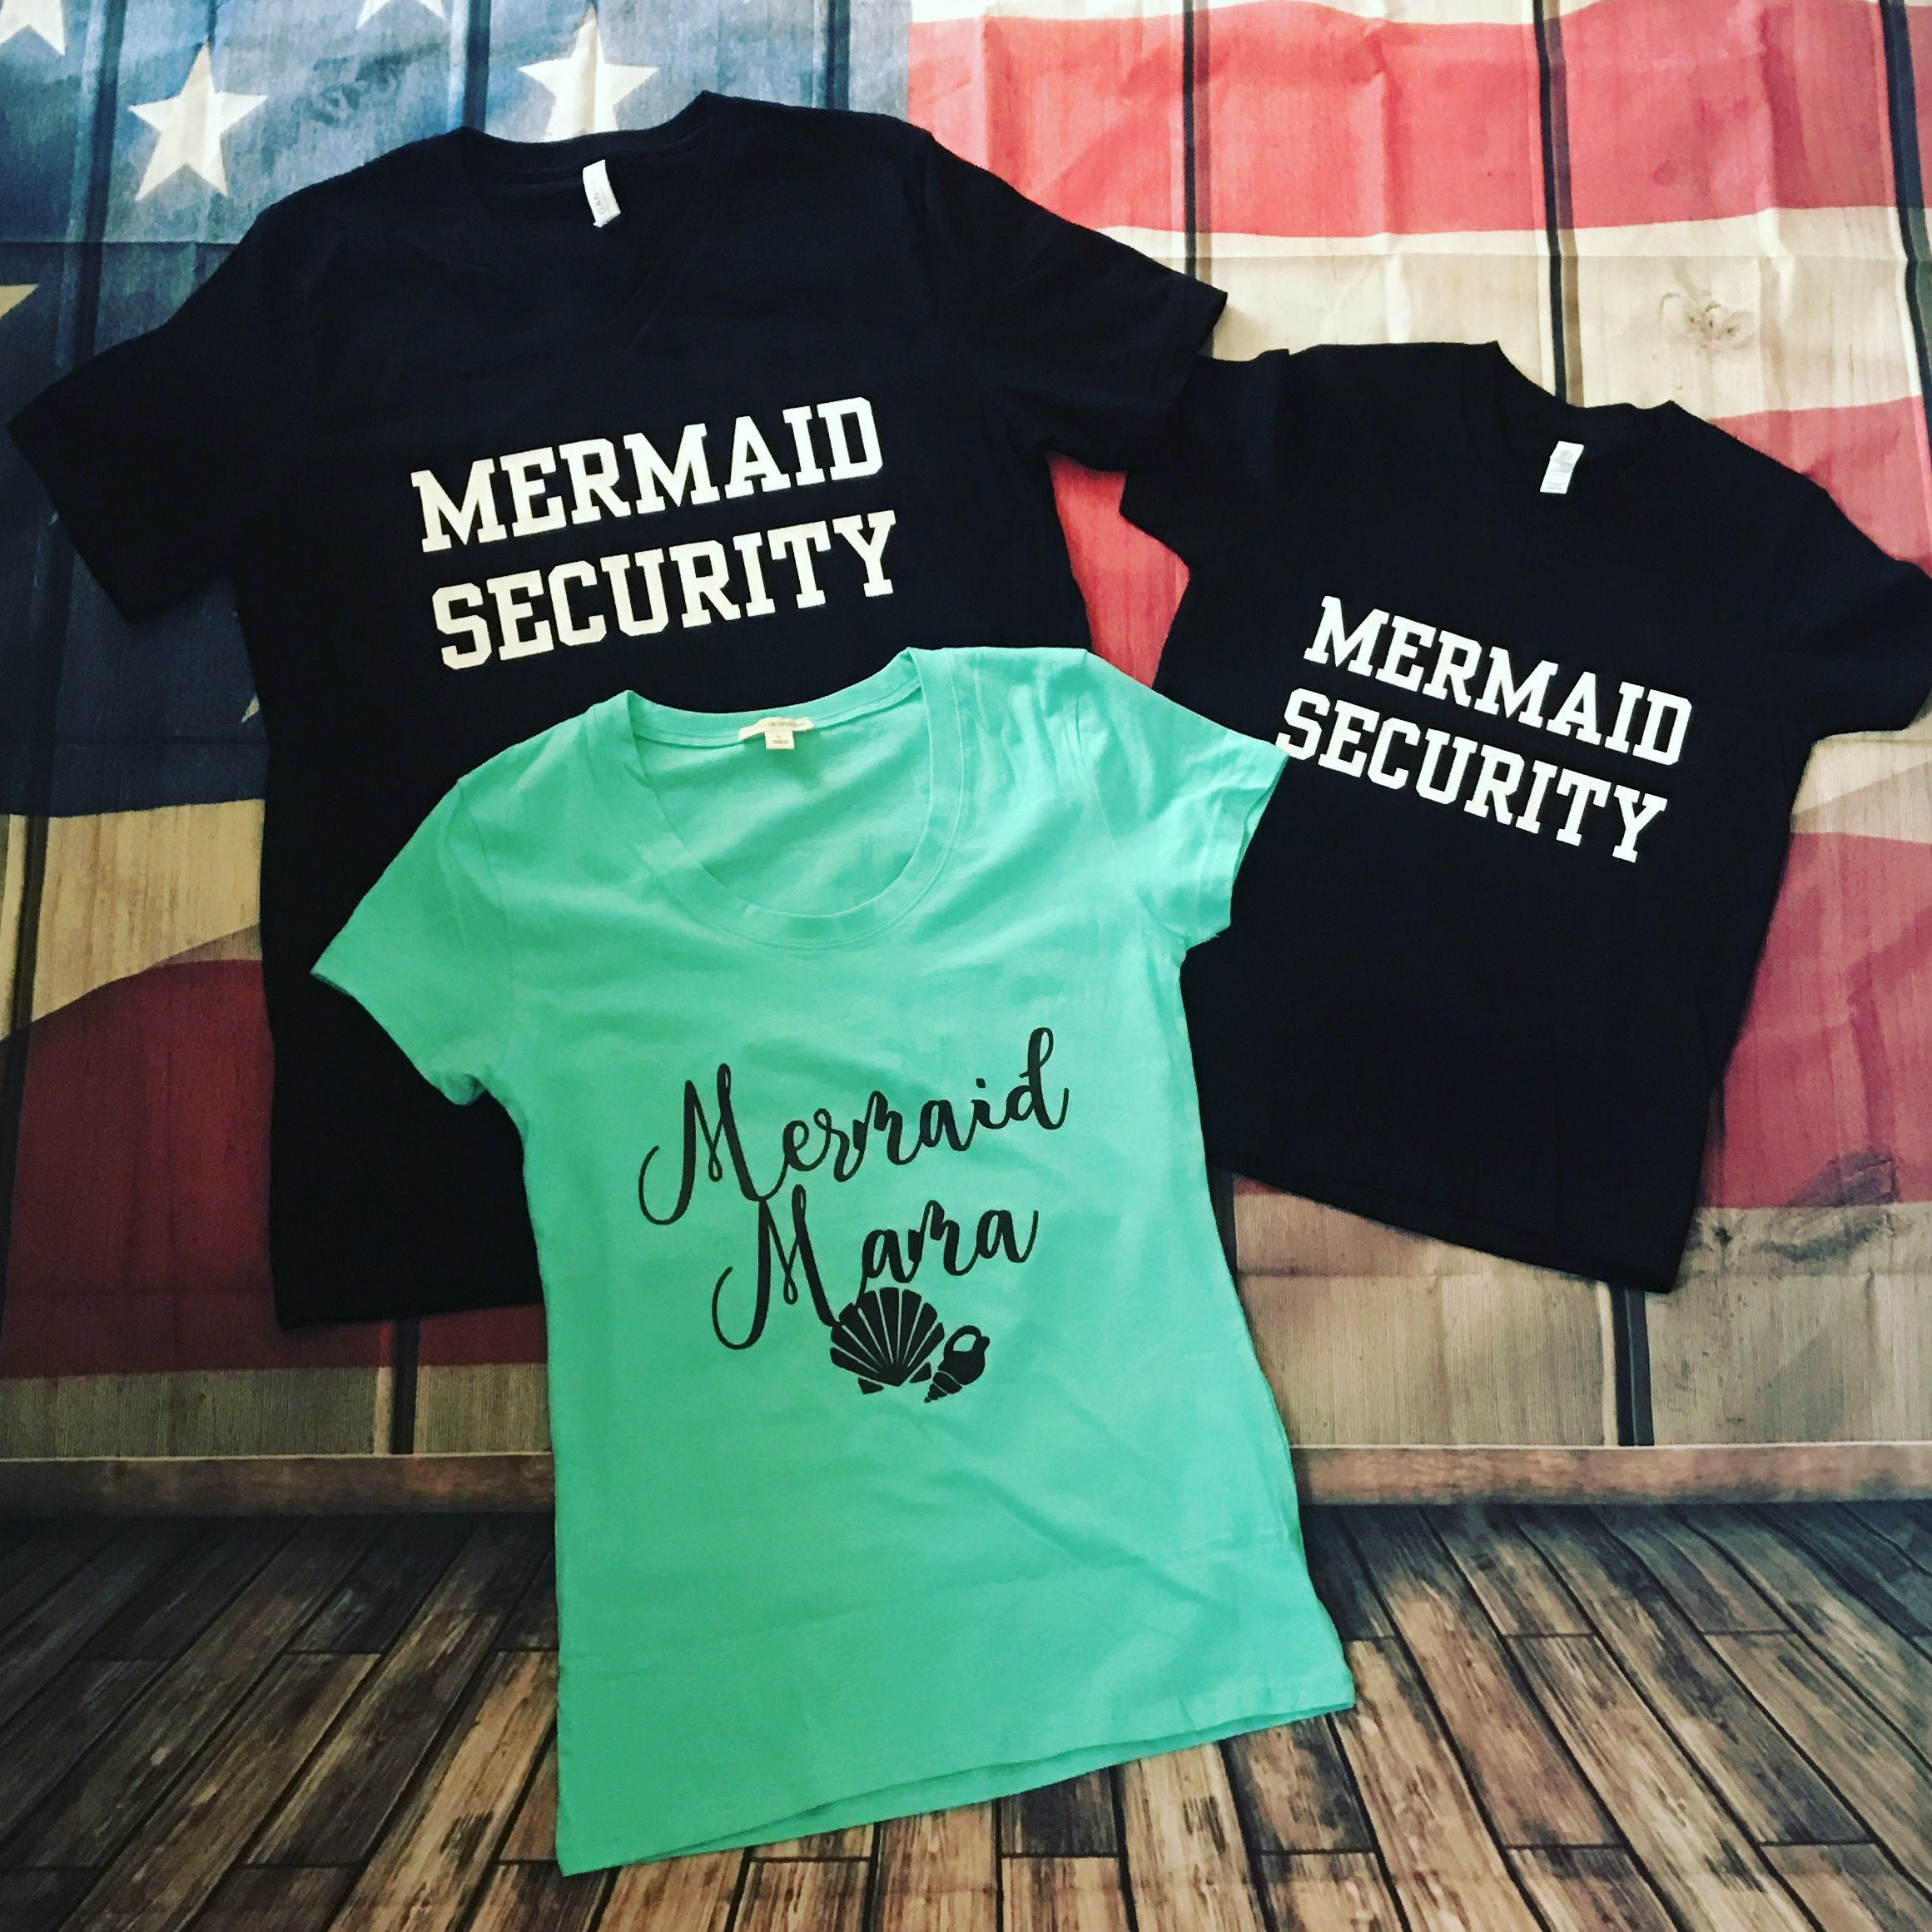 Mermaid Security Set and Mermaid Momma http://stores.ebay.com/diggtees/